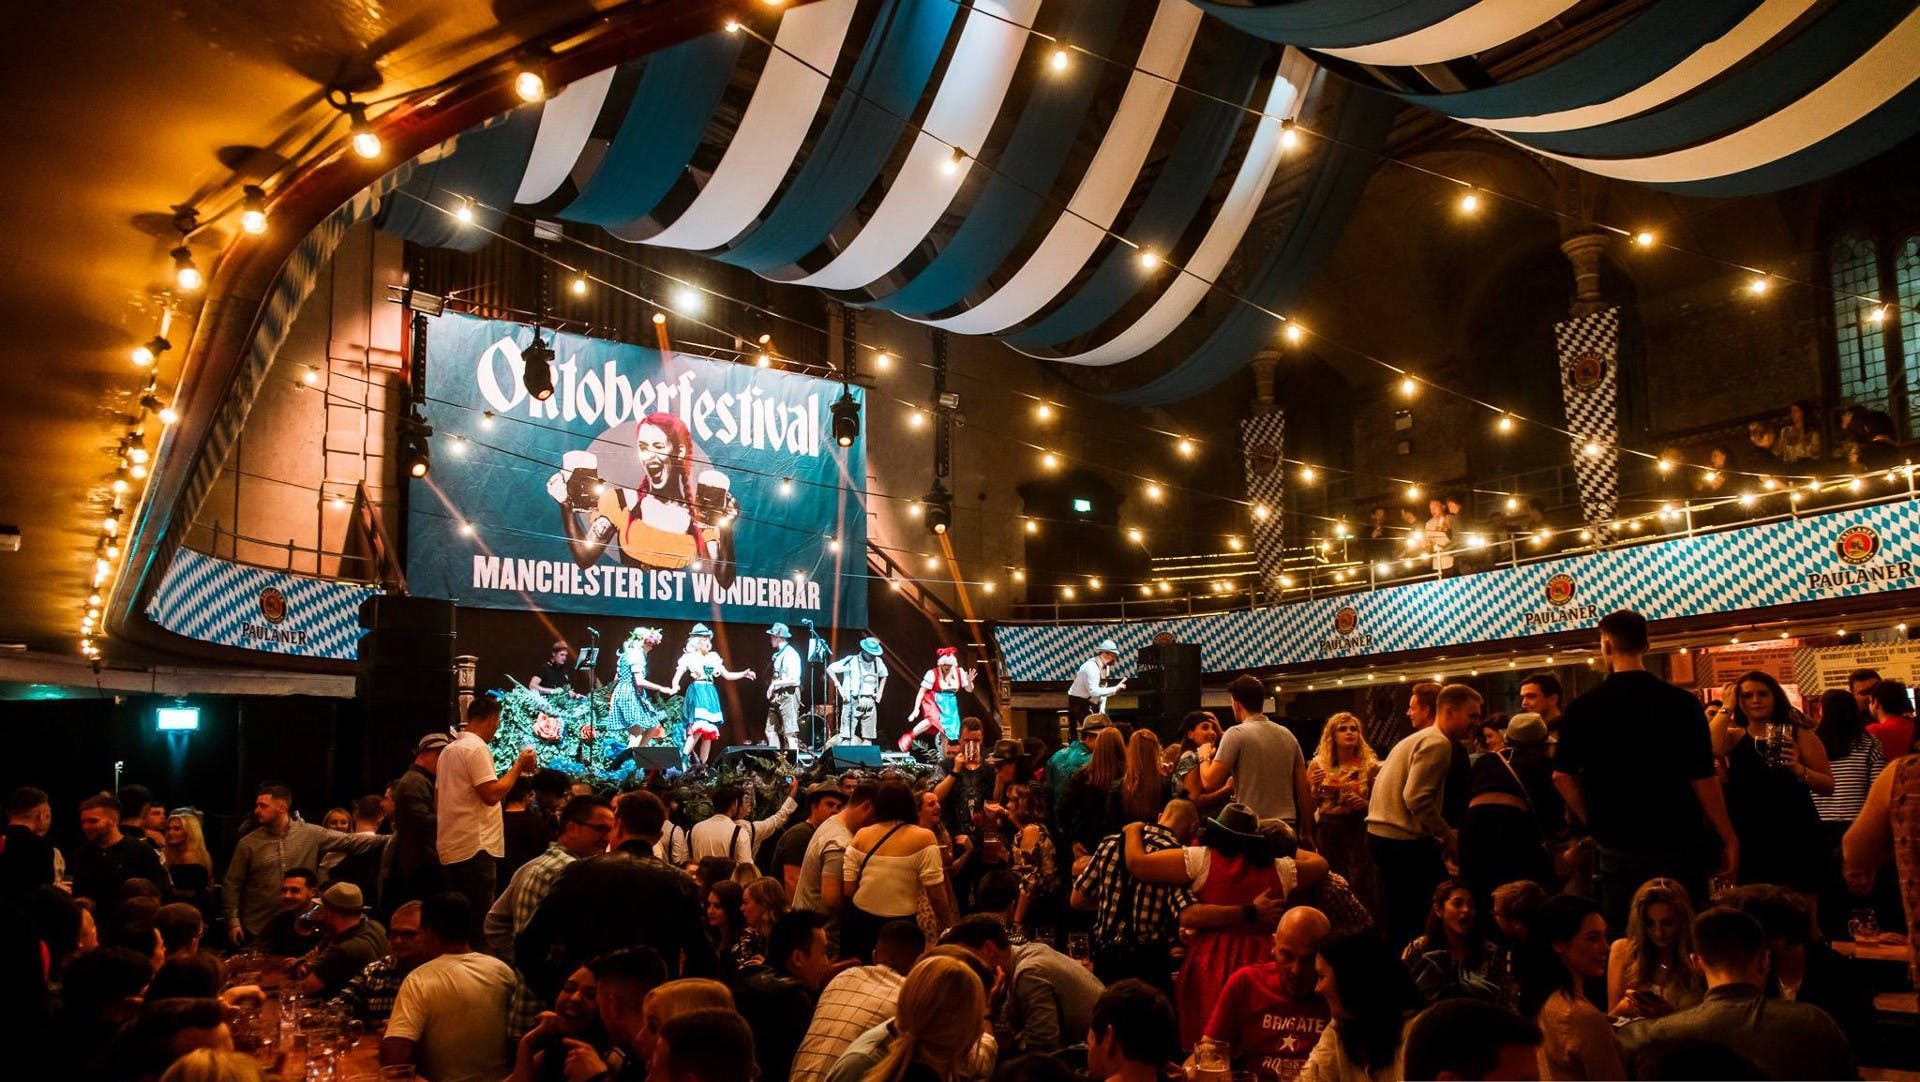 OKTOBERFEST 2020: FRIDAY EVENING